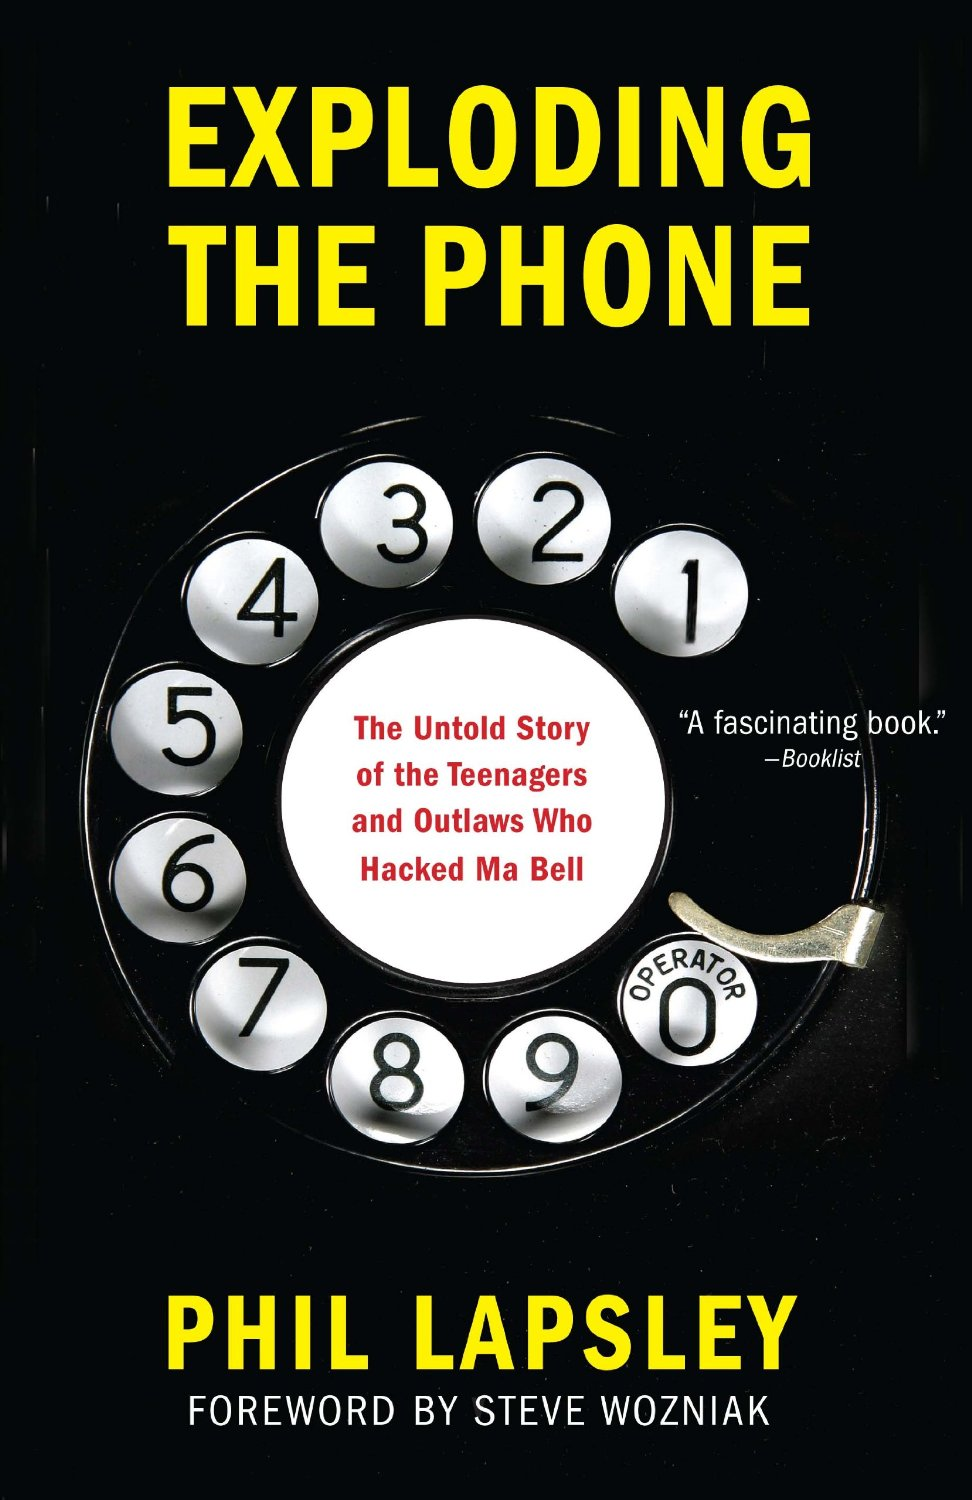 Exploding the Phone, by Phil Lapsley